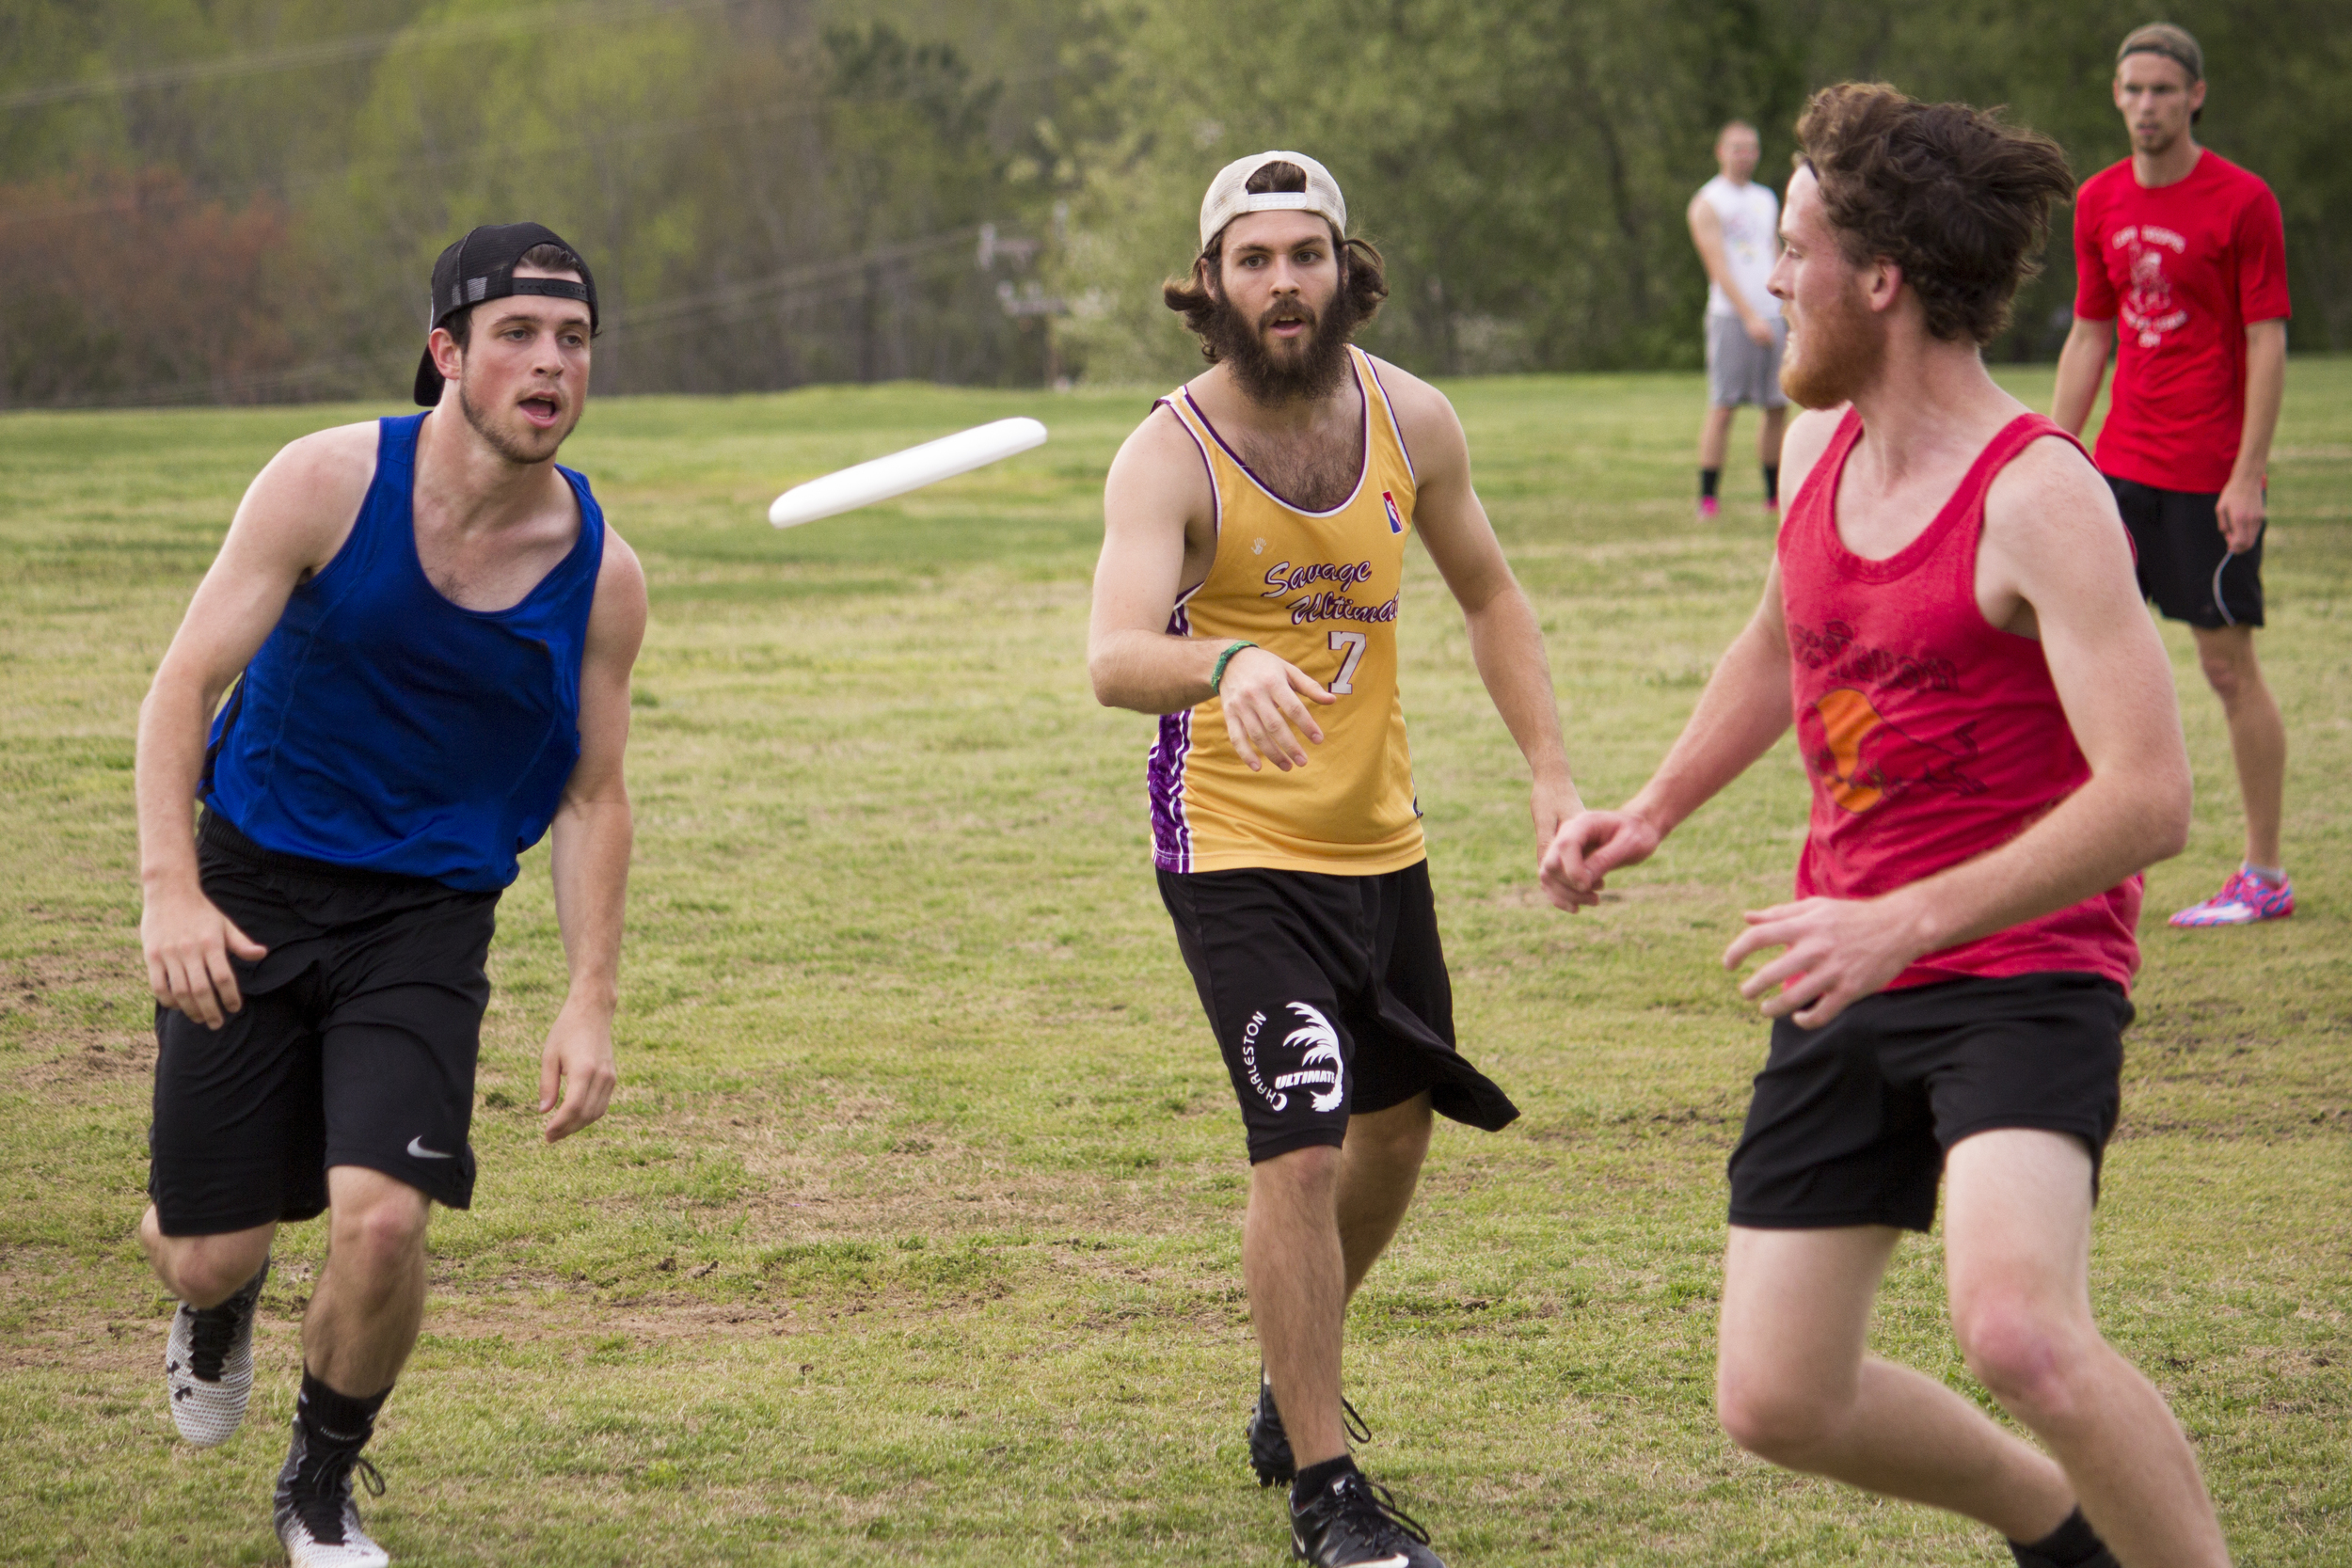 Three players race to the frisbee to obtain possession of it for their team.